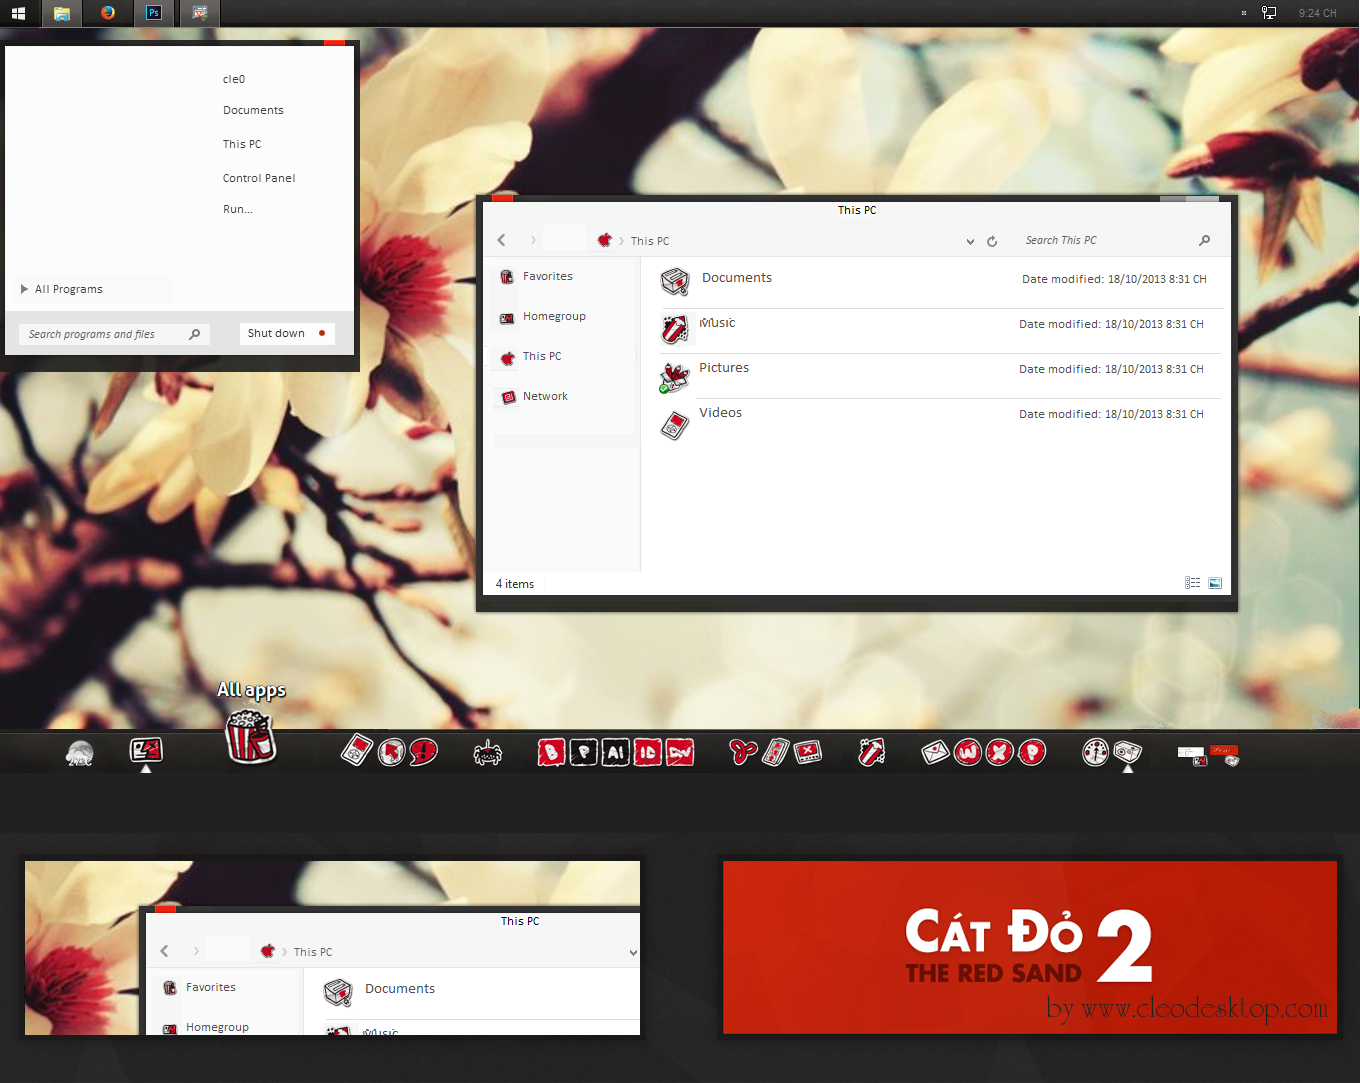 Catdo 2 Theme for win 8-8.1 by cu88